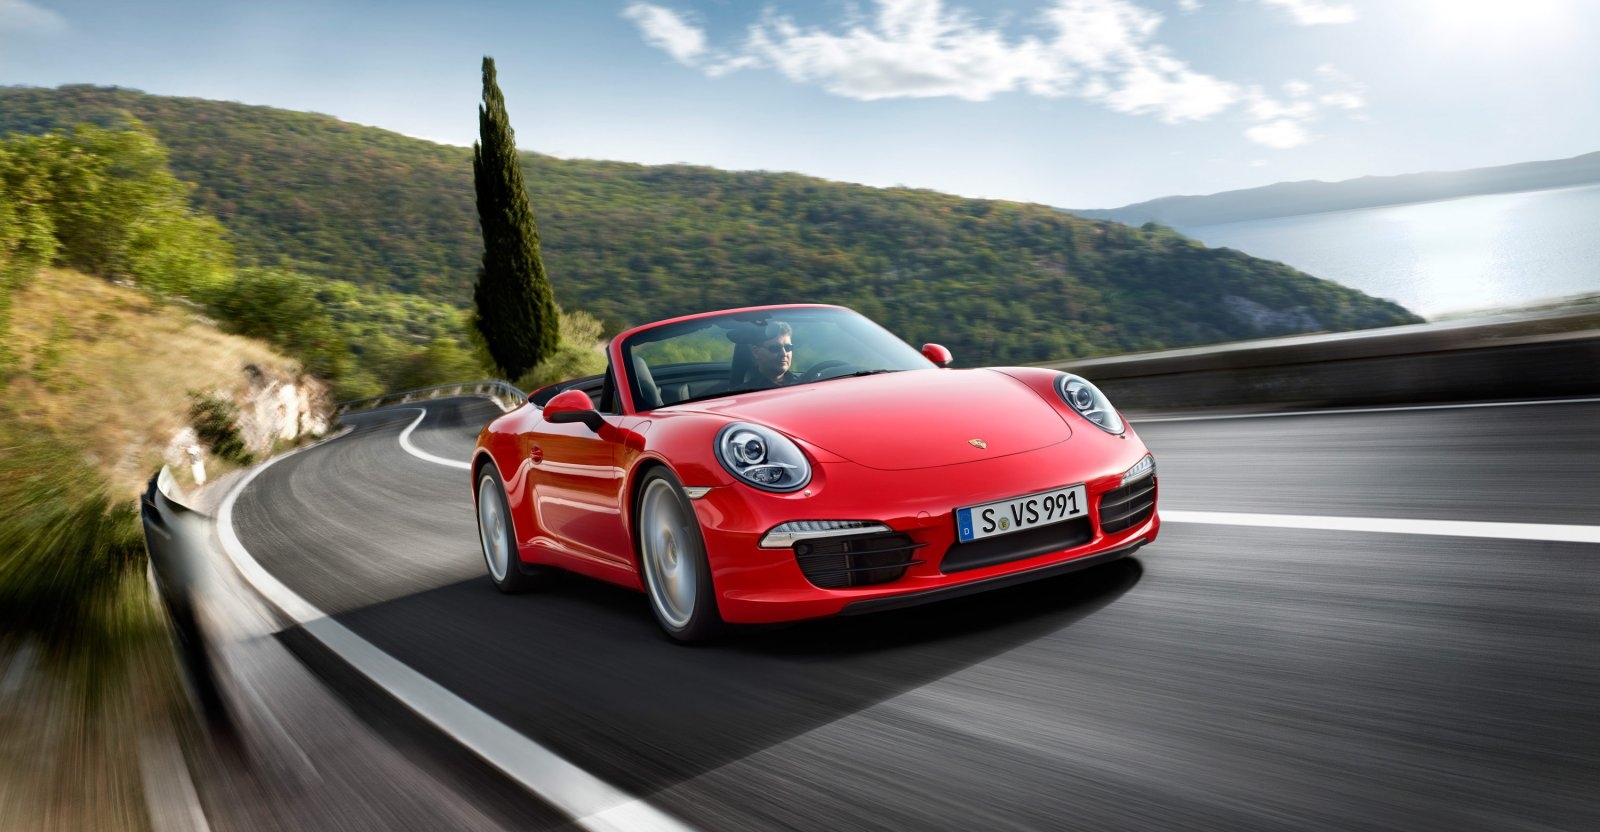 Imagenes De Coches Hd: Wallpapers De Coches Porsche. FondosWiki.com